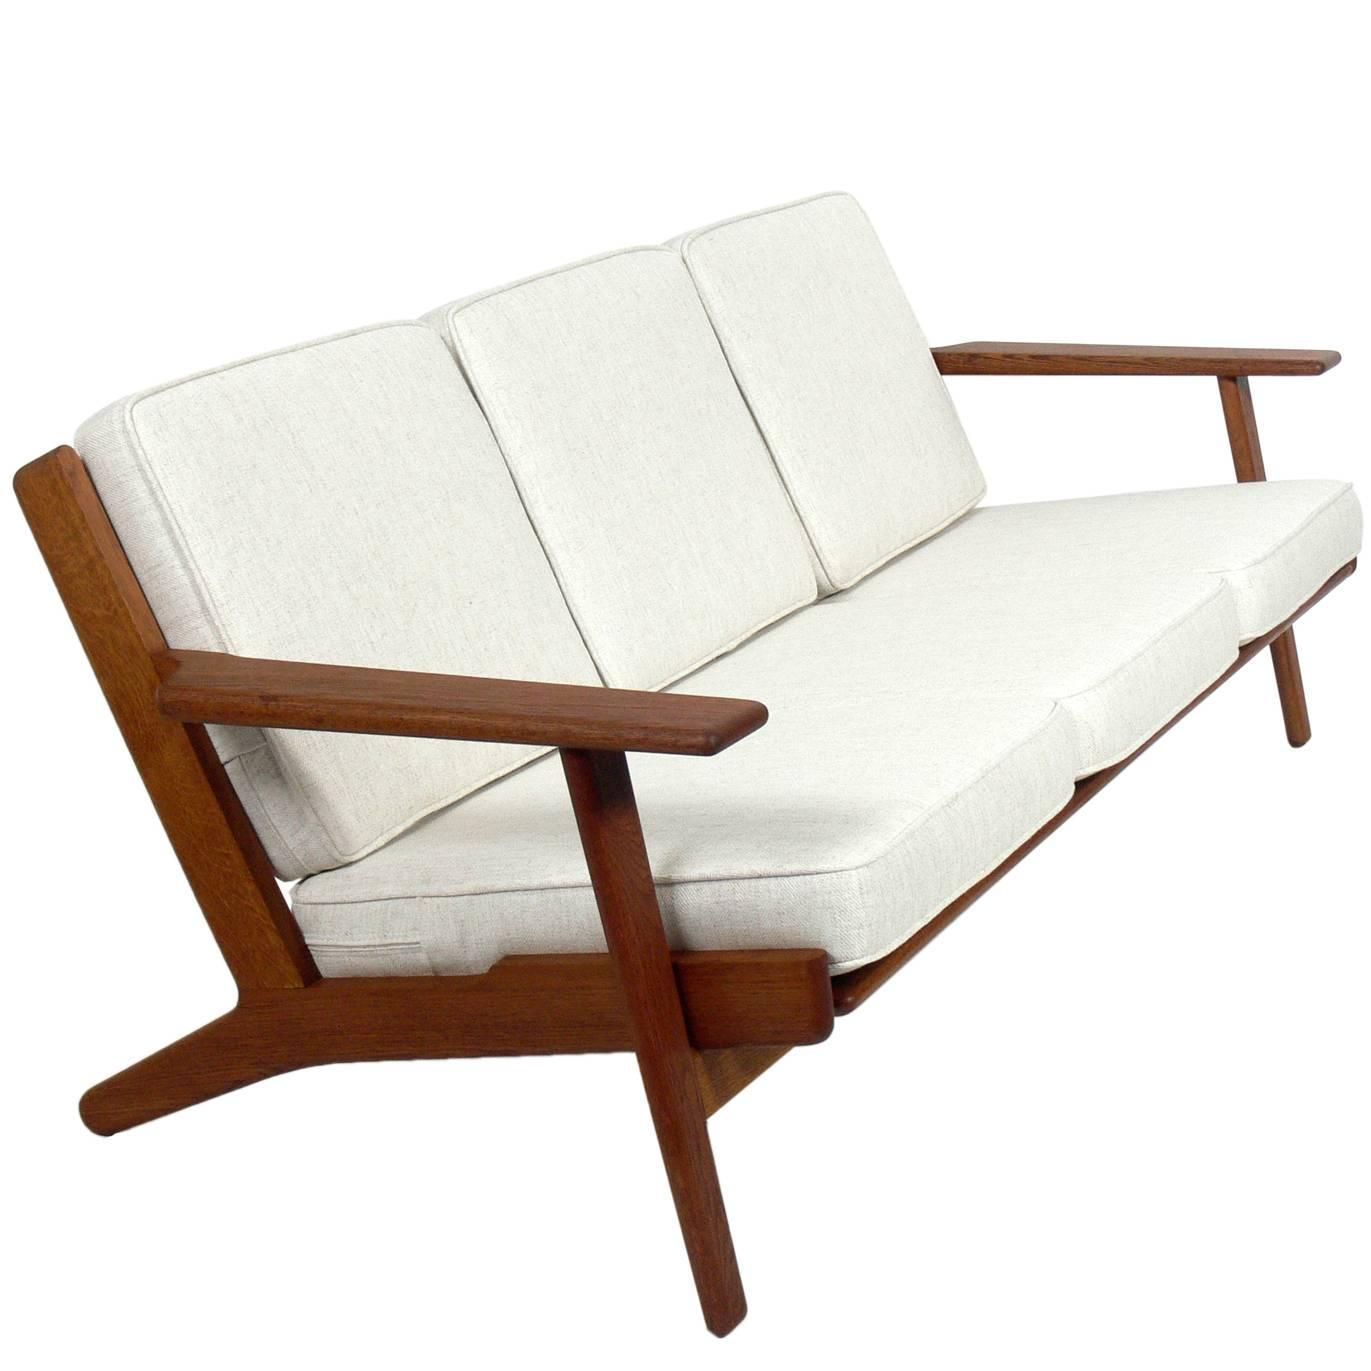 hans wegner sofa hans wegner style designer furniture swiveluk com thesofa. Black Bedroom Furniture Sets. Home Design Ideas